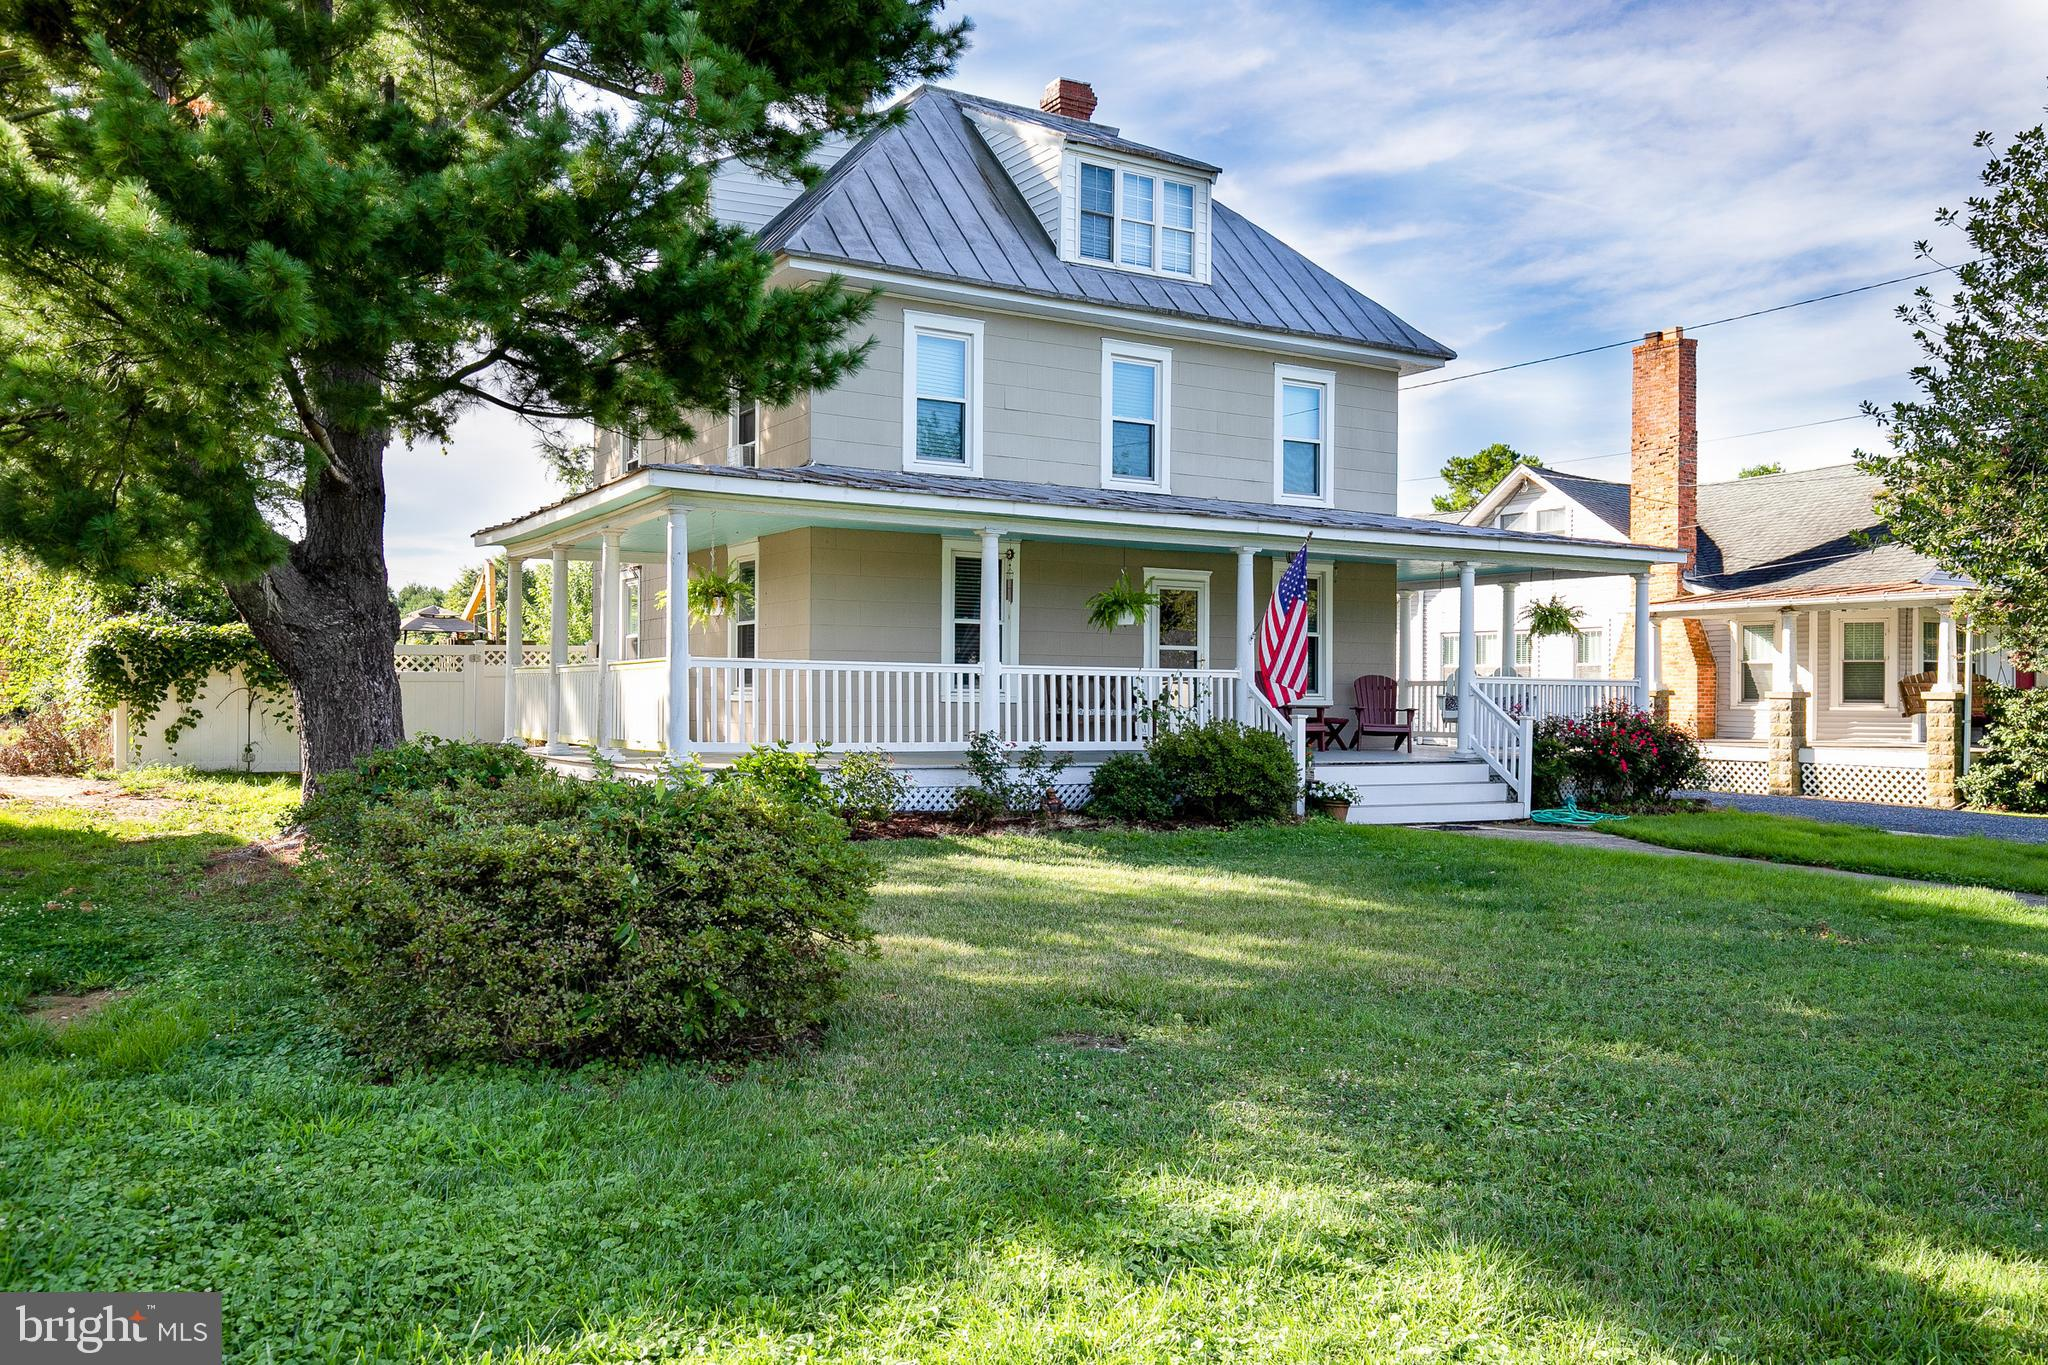 Great opportunity to own one of the few Victorian style homes, just down the road from Historic Stev